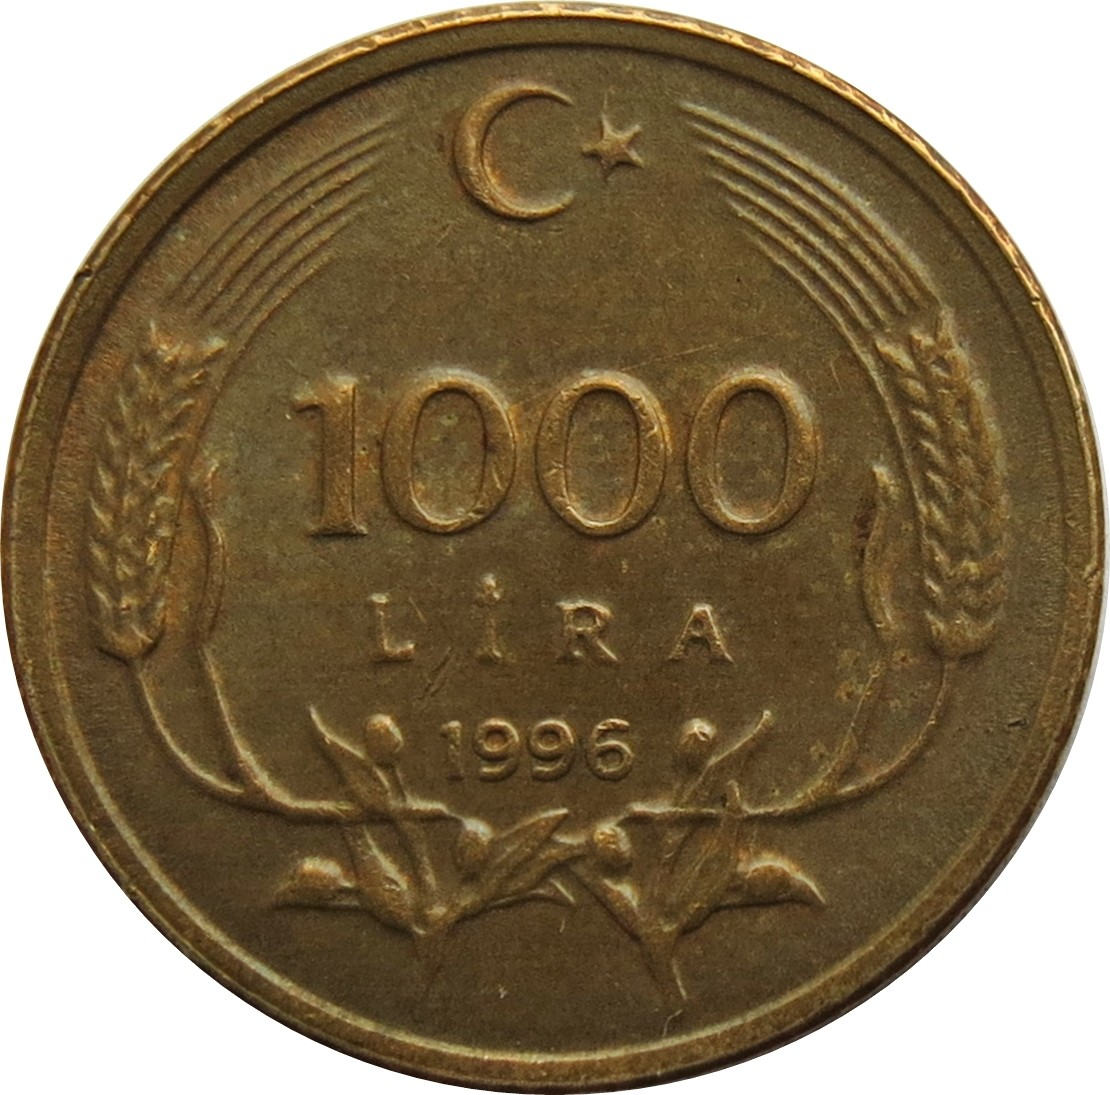 Turkey 1000 Lira